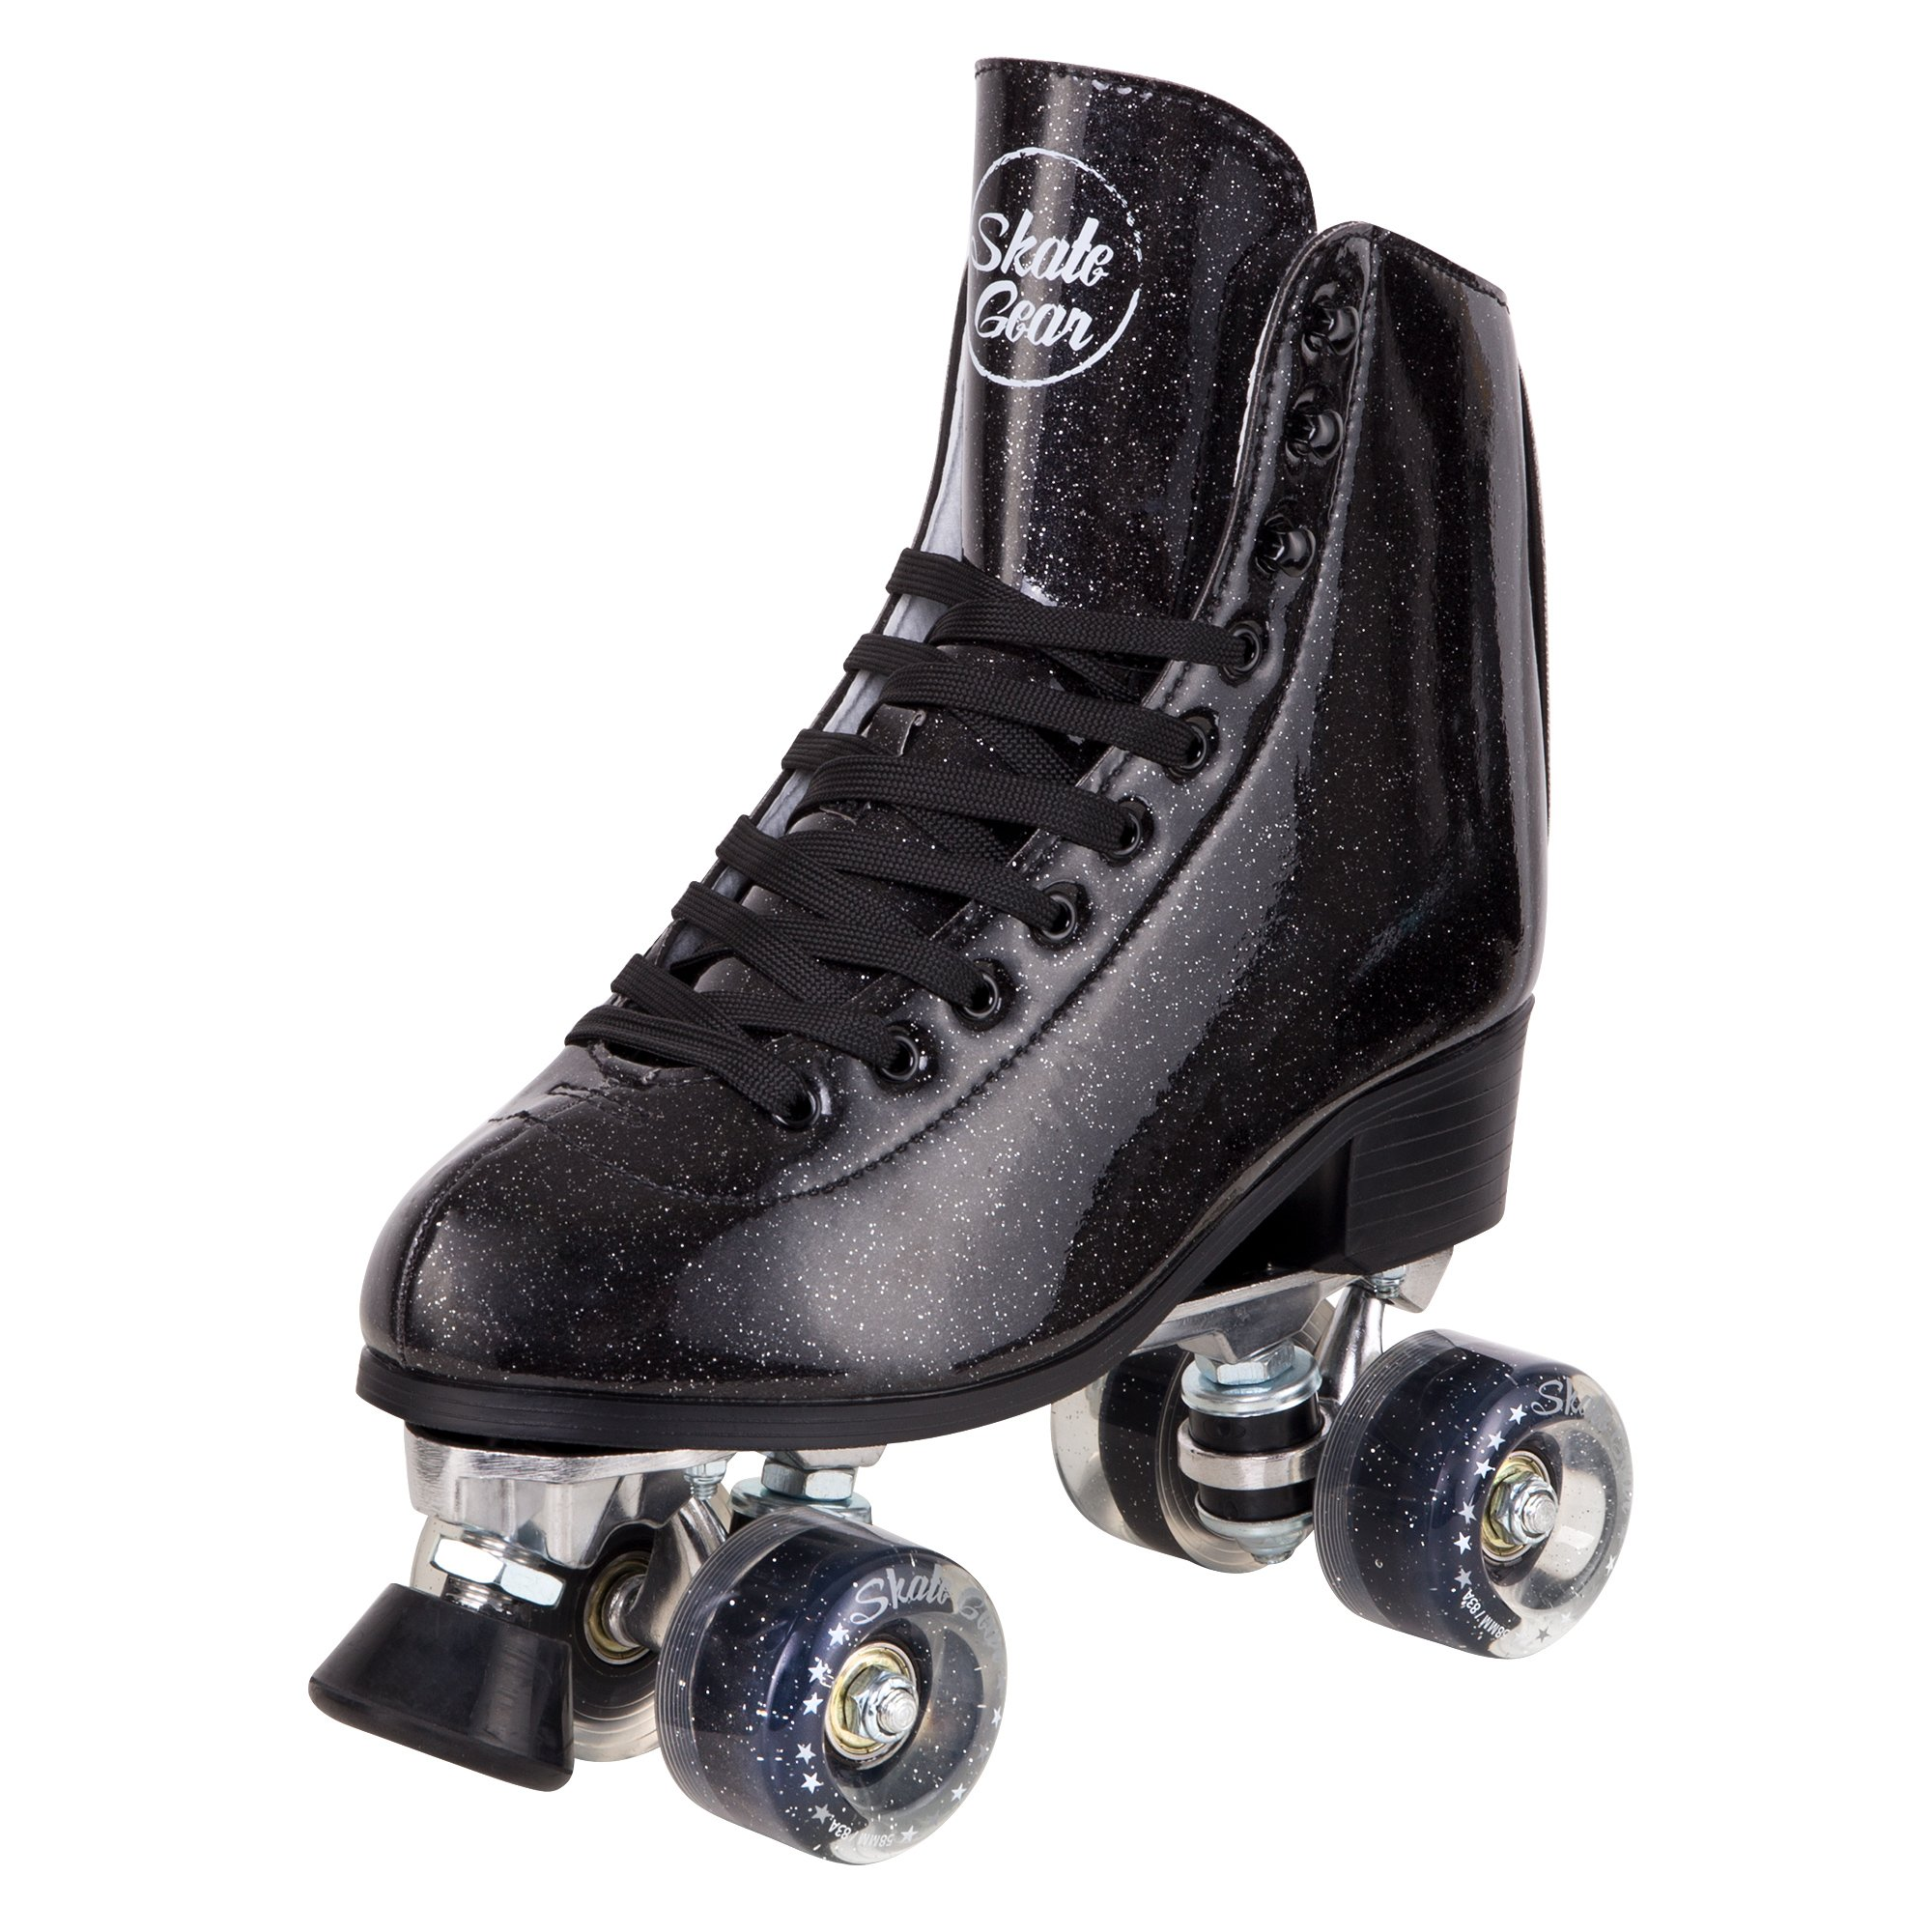 Cal 7 Sparkly Roller Skates for Indoor & Outdoor Skating, Faux Leather Quad Skate with Ankle Support & 83A PU Wheels for Kids & Adults (Black, Youth 5 / Women's 6)